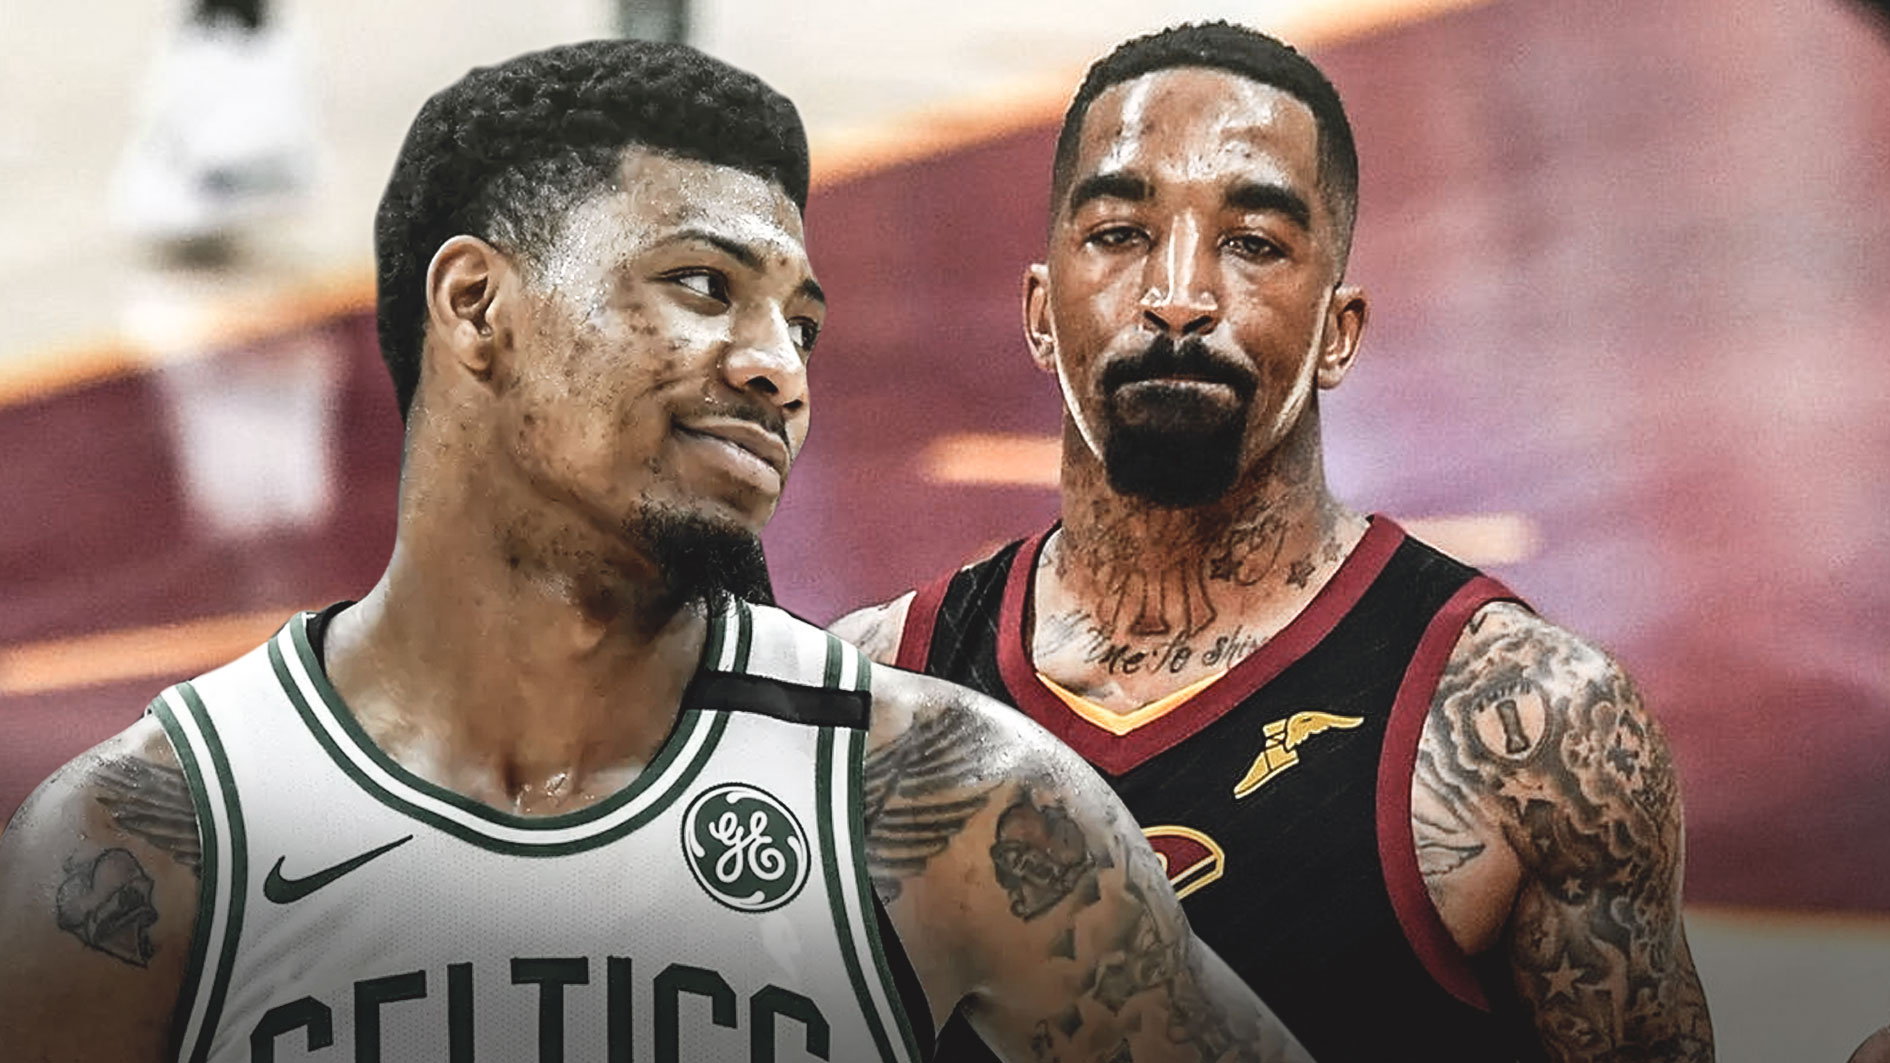 Marcus Smart ejected for shoving J.R. Smith